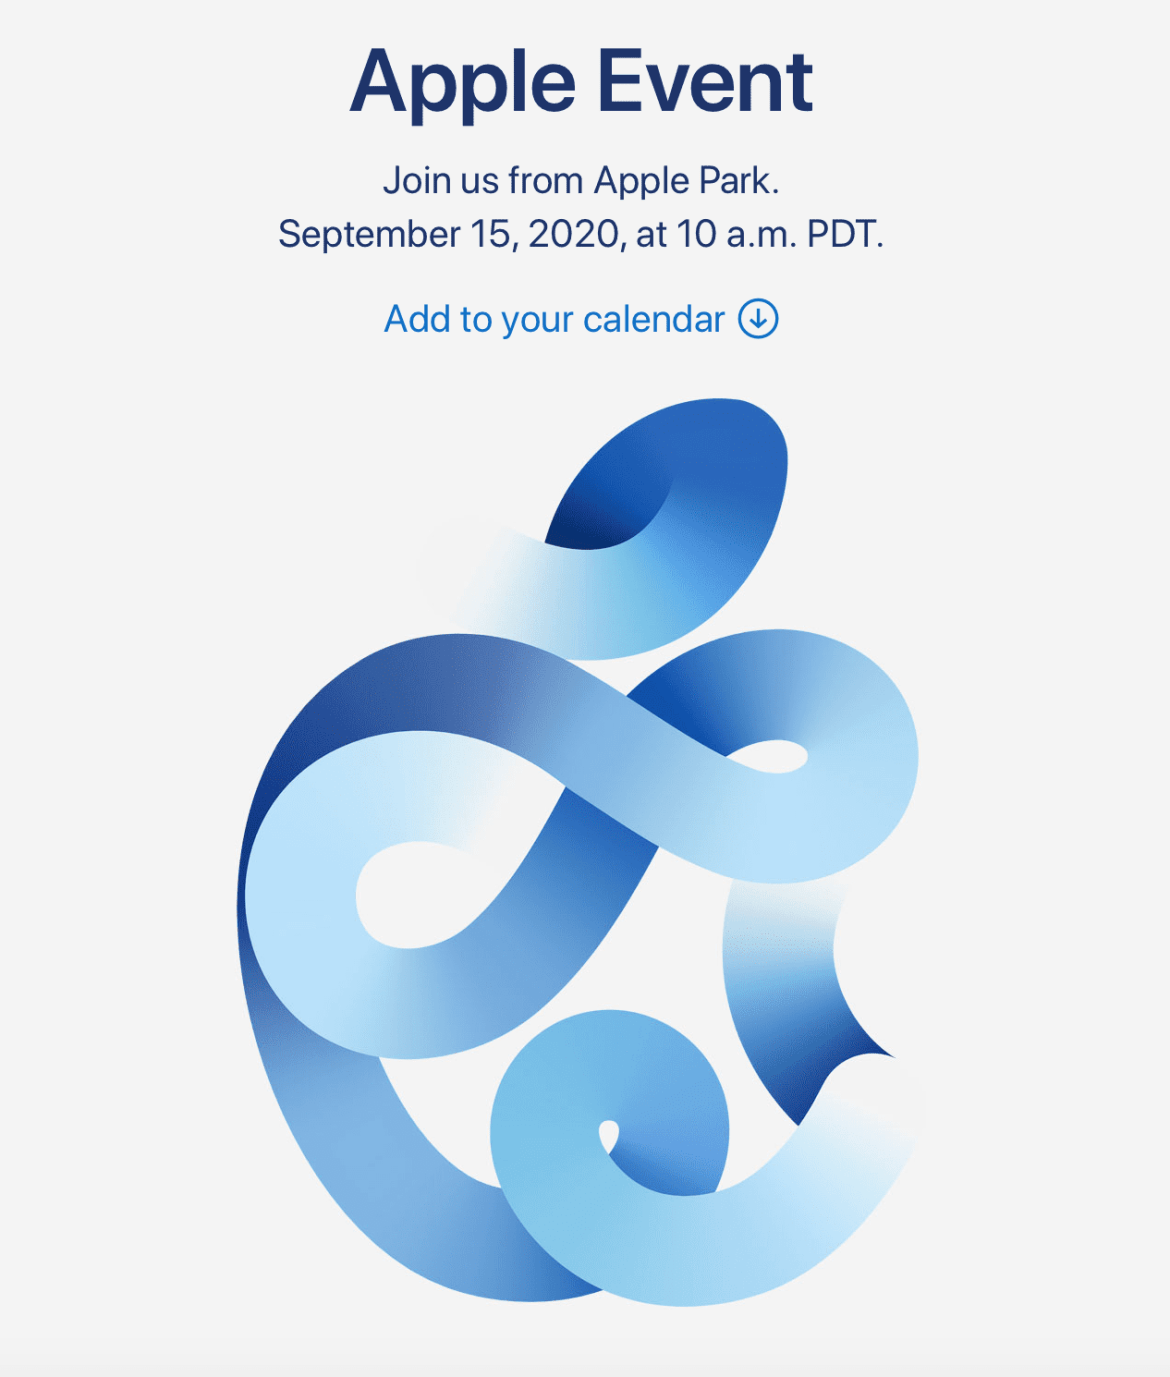 Apple is having an event on Sept 15 – Watch, iPad